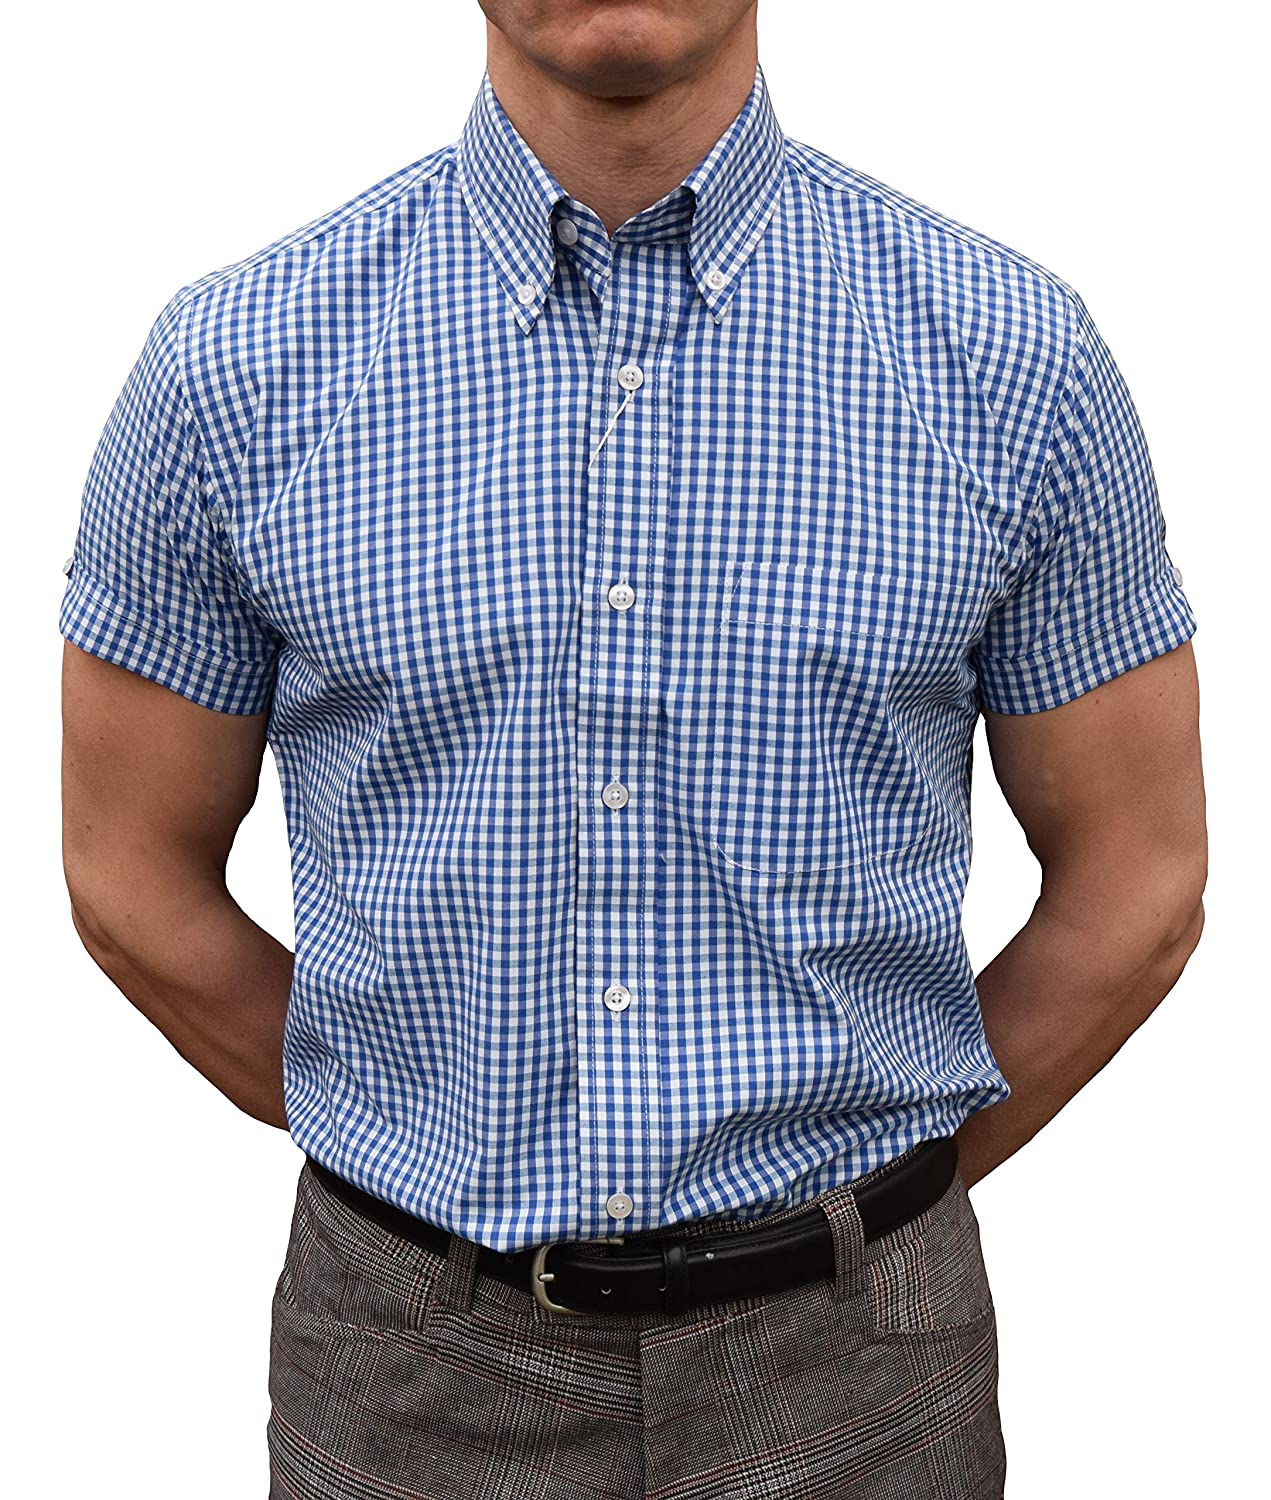 Relco Blue Gingham Short Sleeve Shirt S-3XL Available